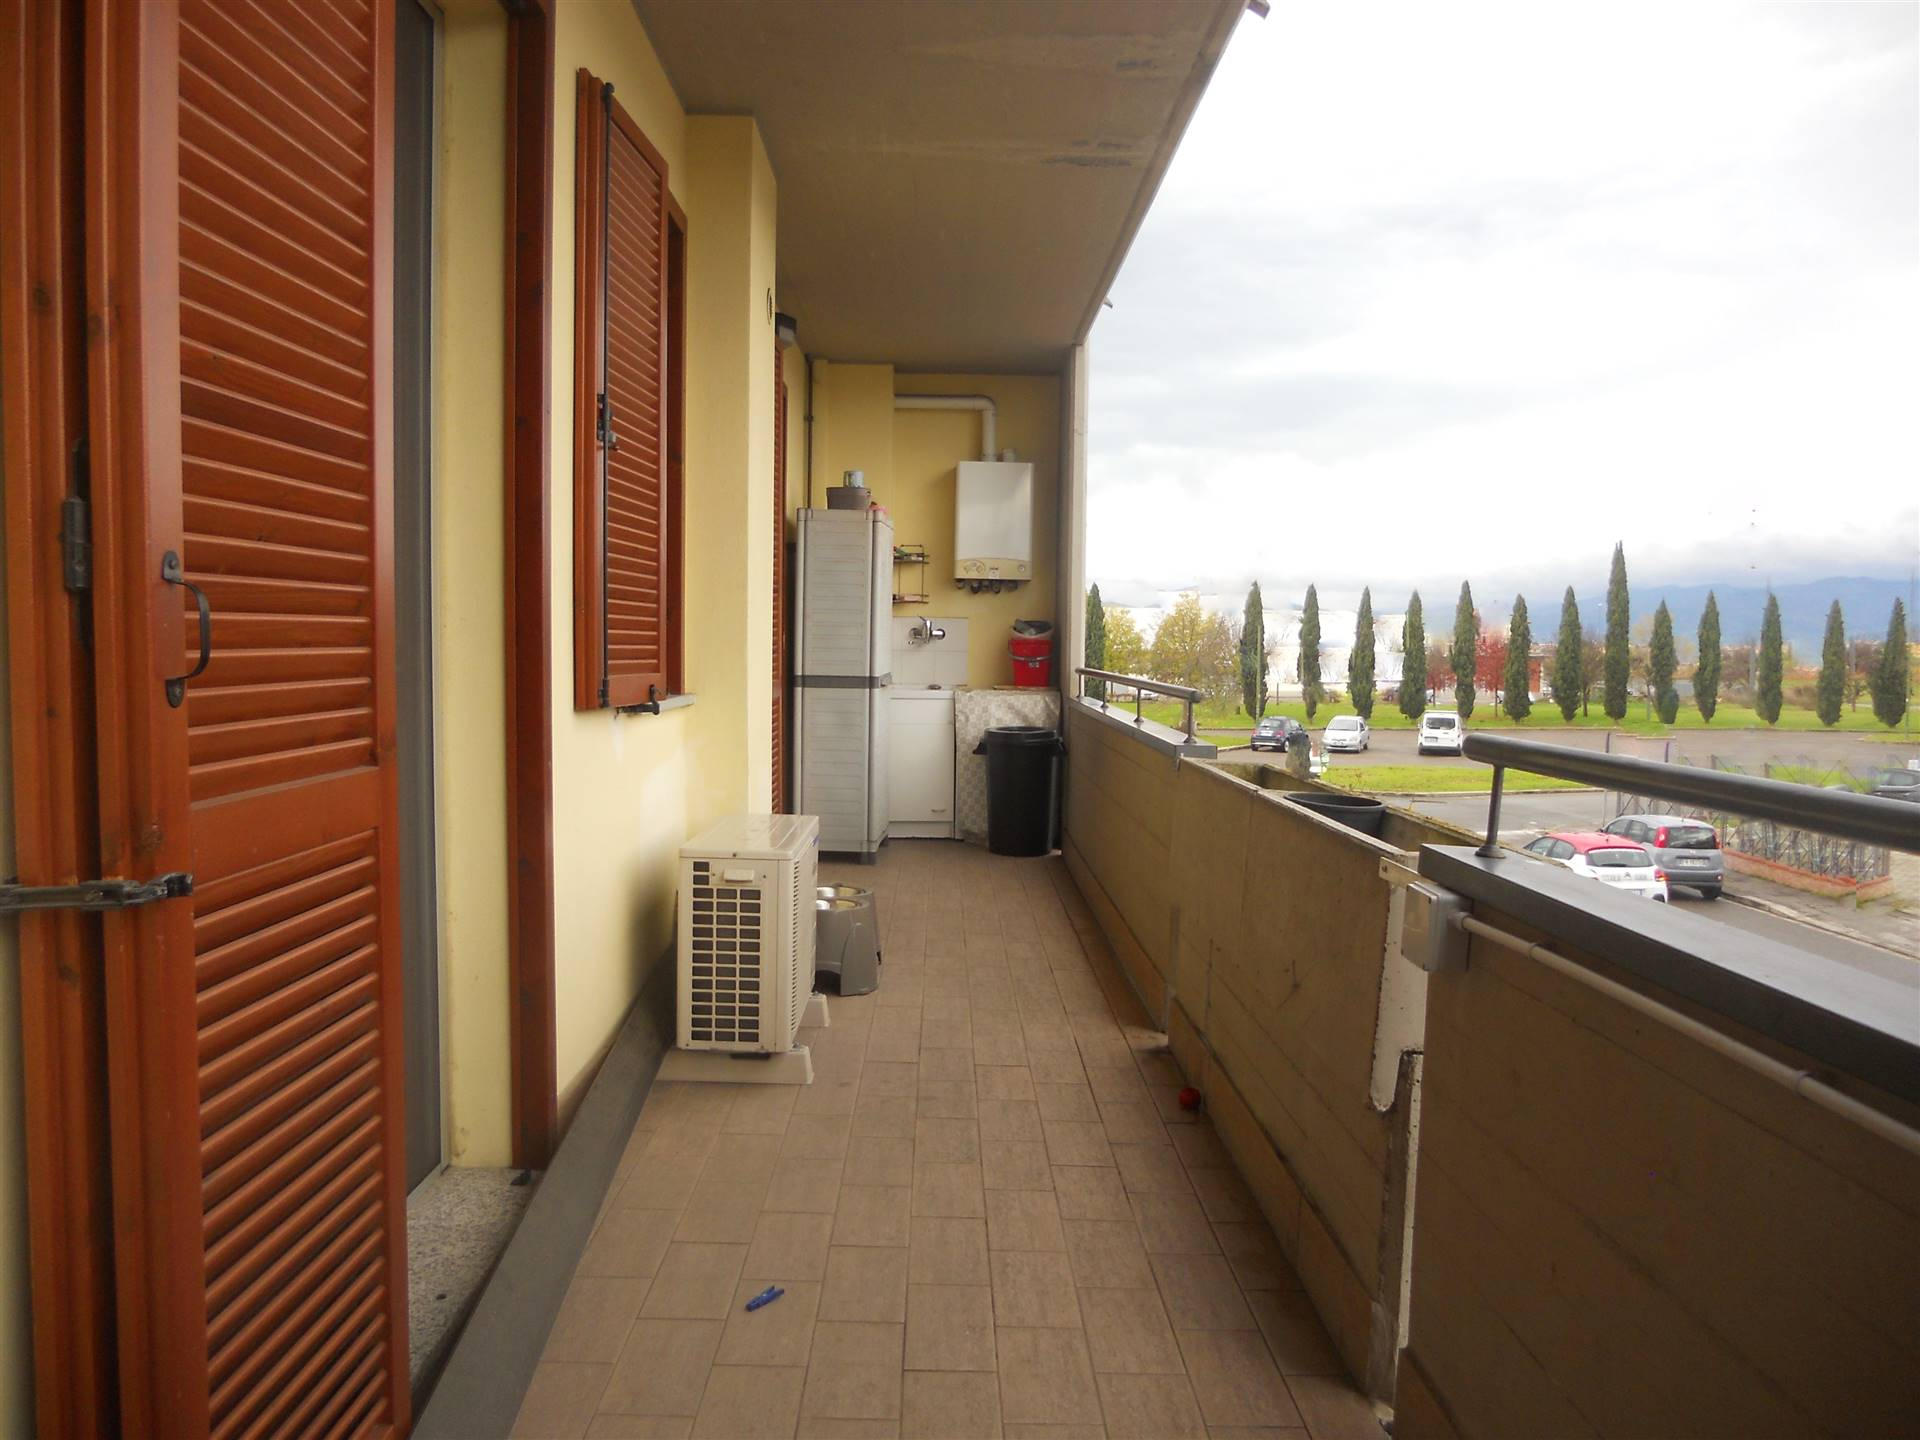 SAN LORENZO, CAMPI BISENZIO, Apartment for sale of 63 Sq. mt., Excellent Condition, Heating Individual heating system, Energetic class: G, placed at